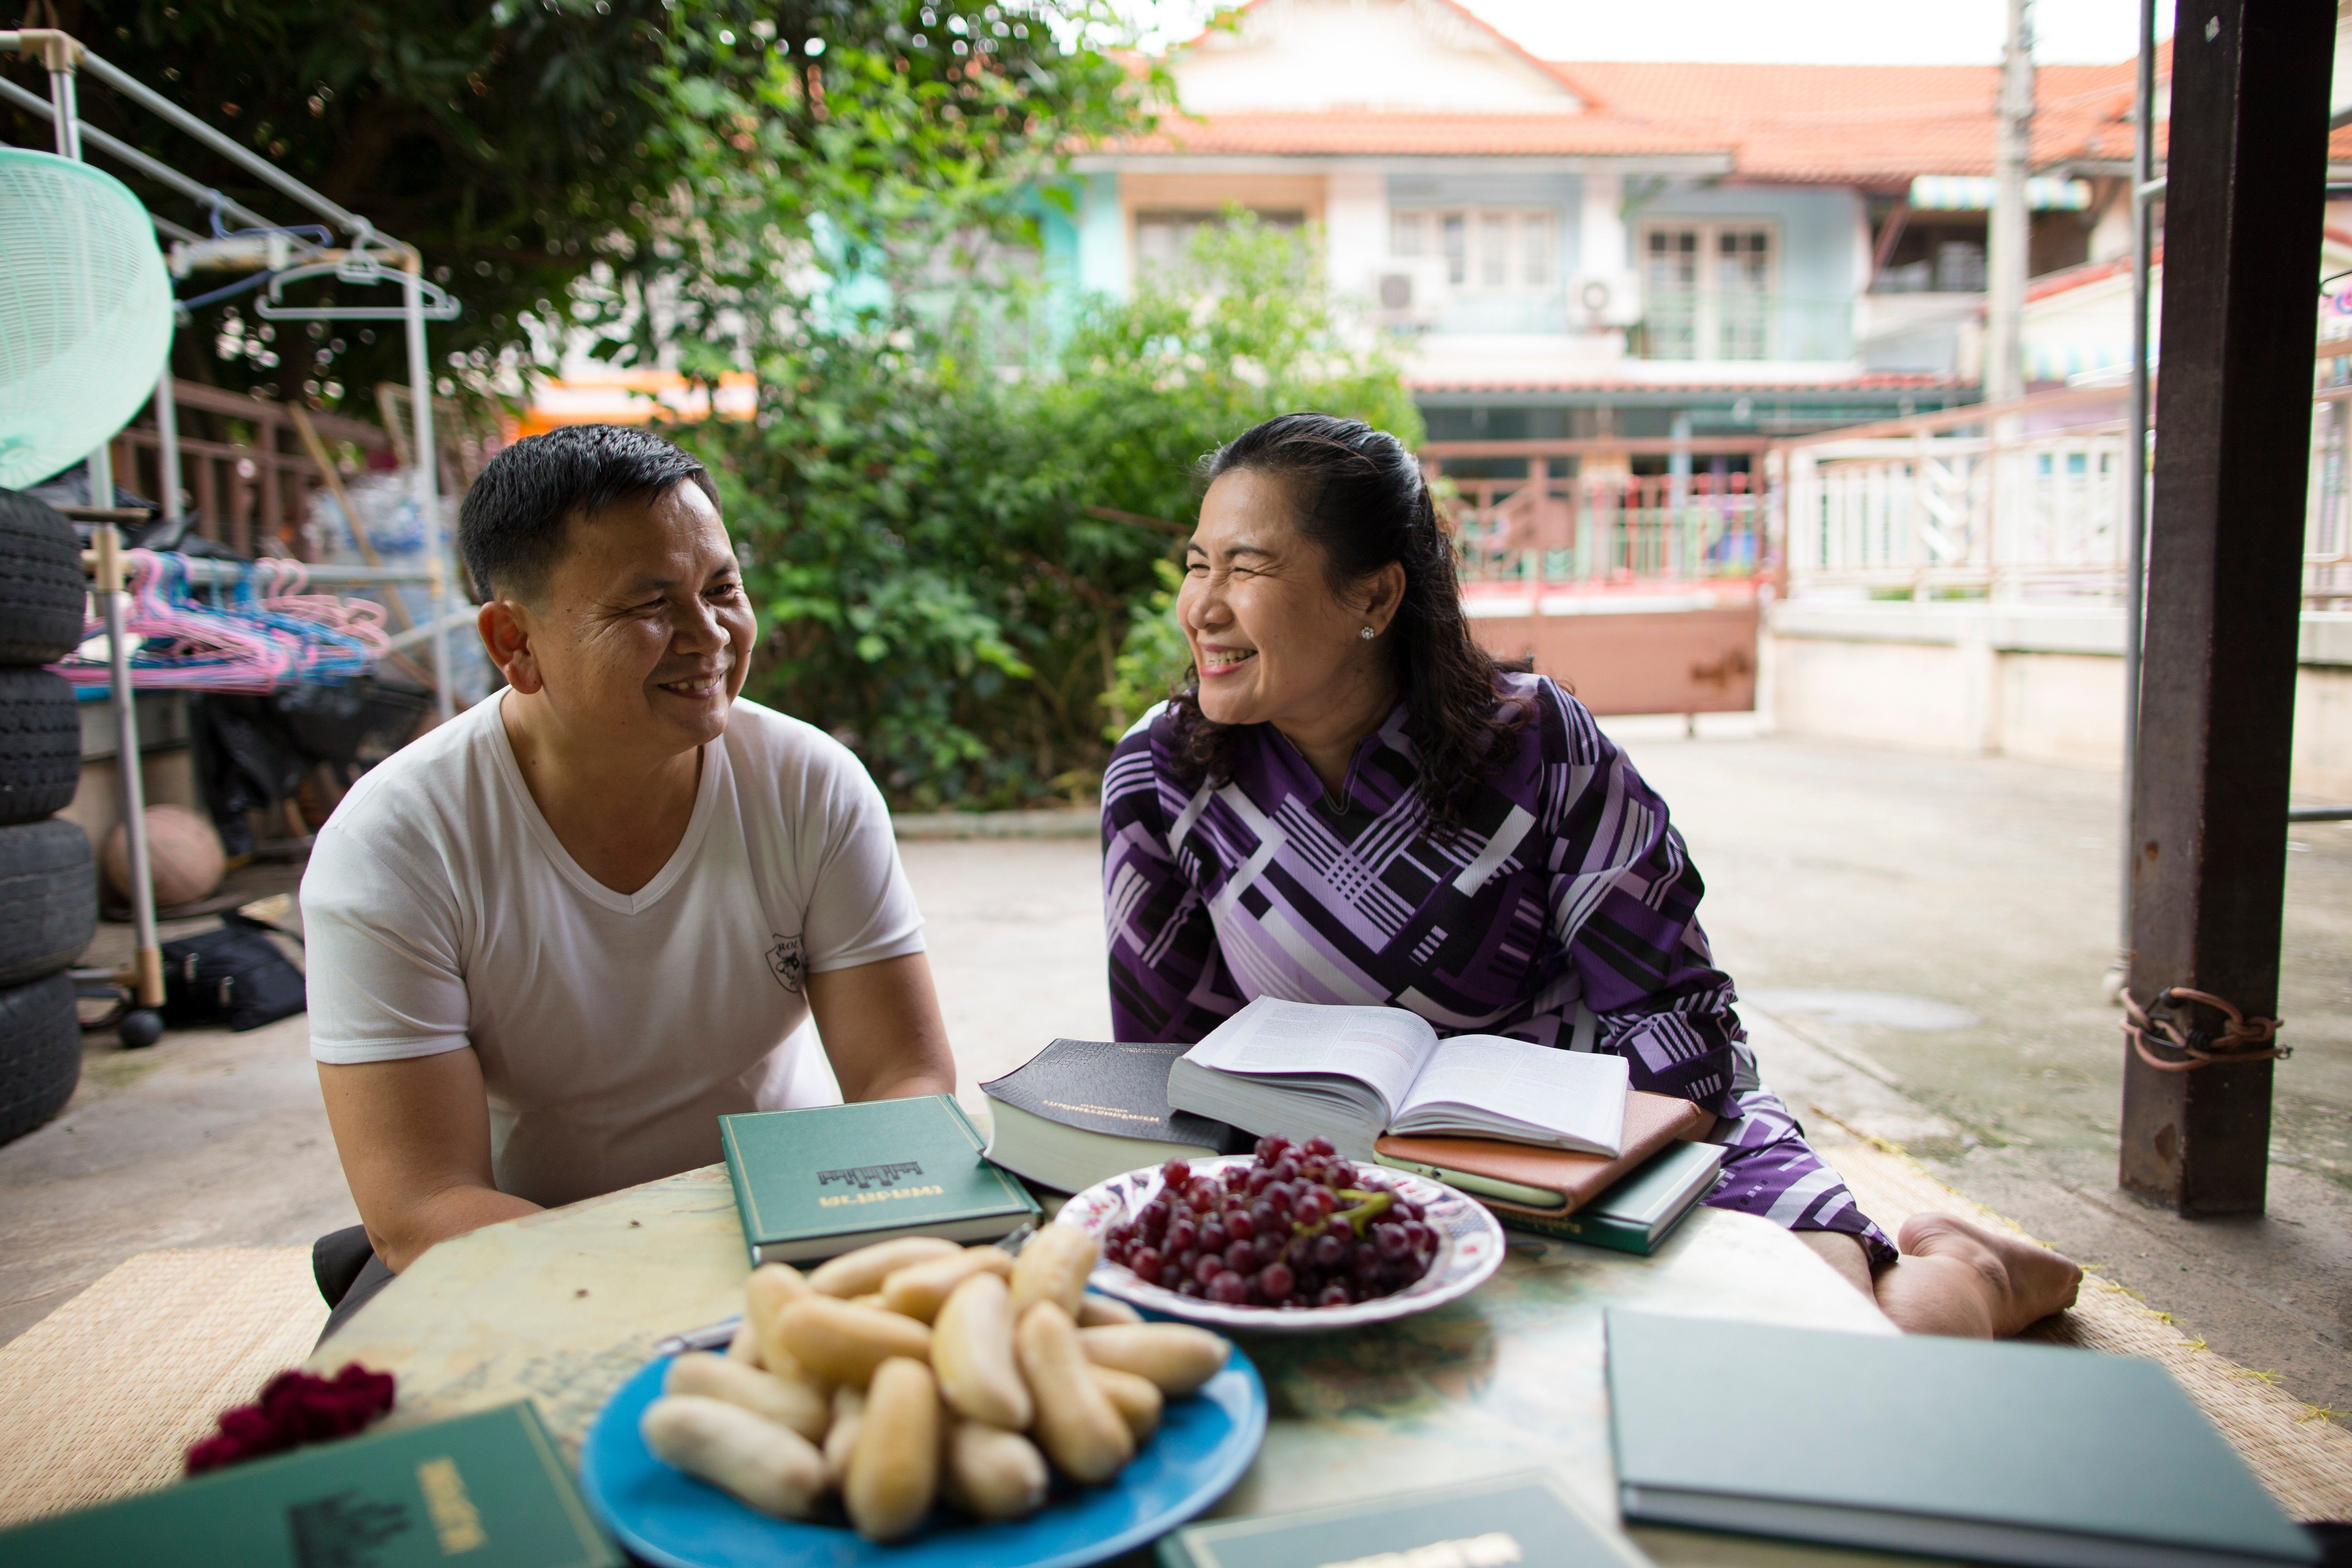 A couple from Thailand smiling and sitting at a table with gospel books.